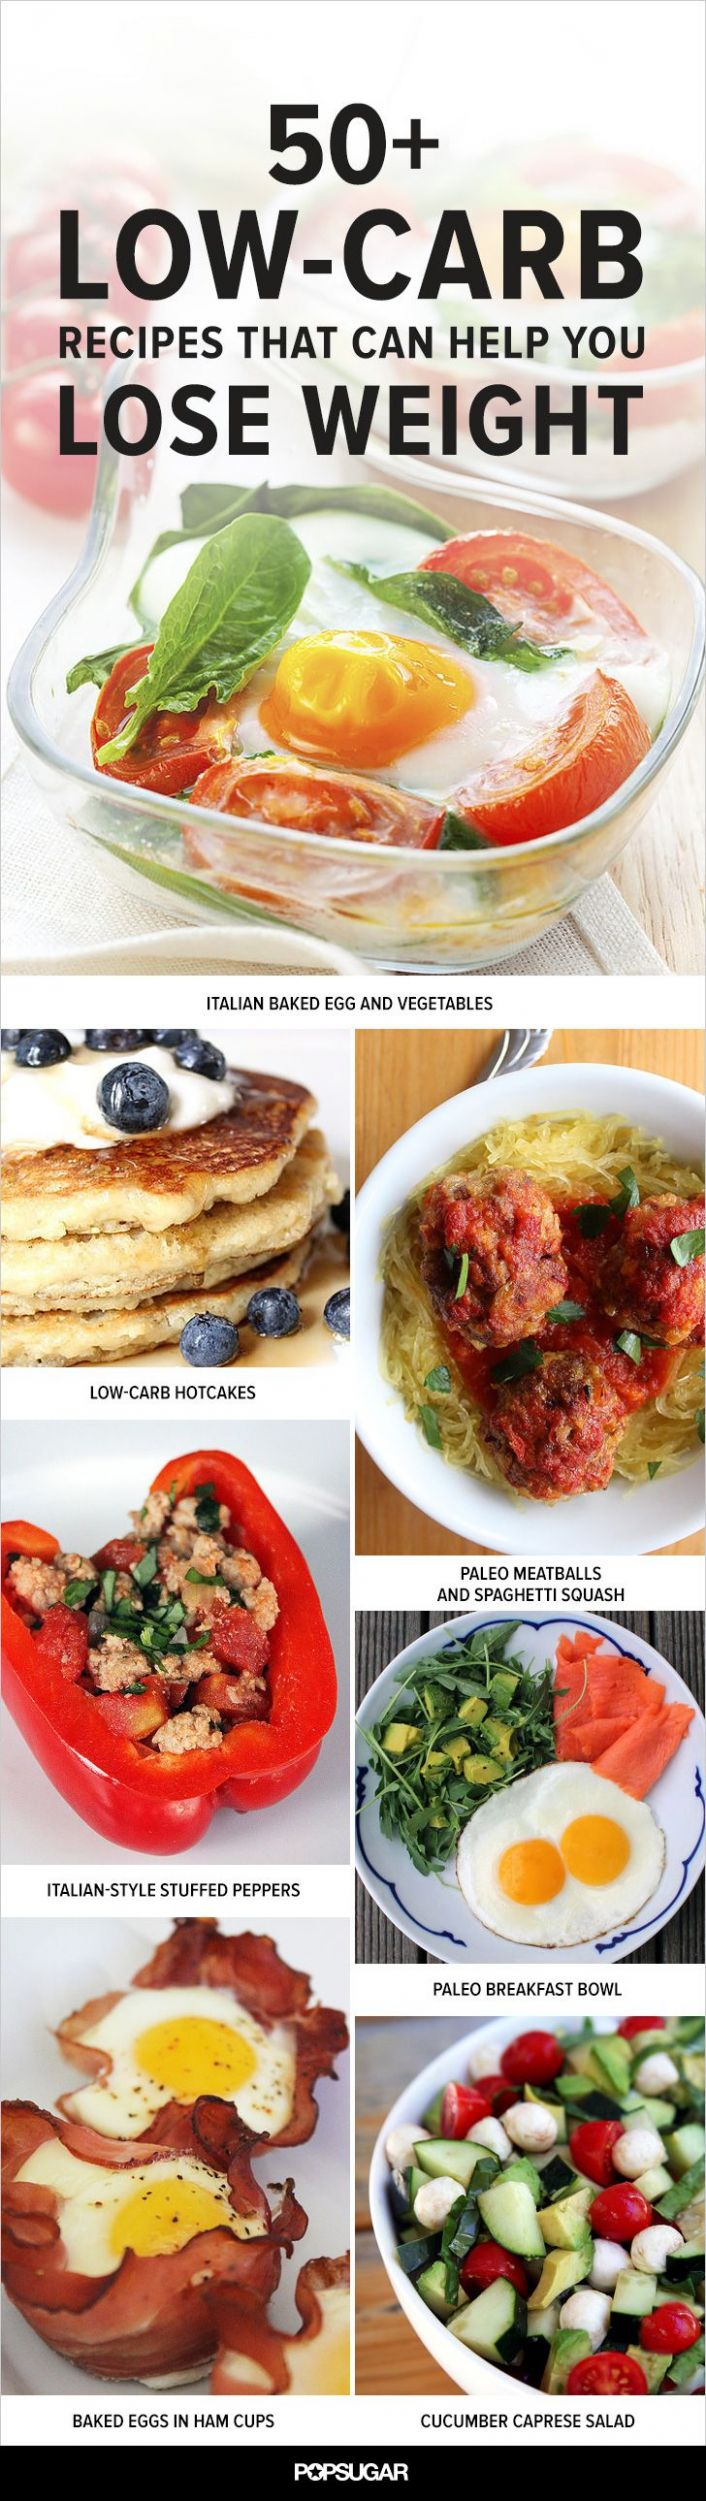 Pin auf Healthy - Healthy Recipes For Weight Loss Low Carb